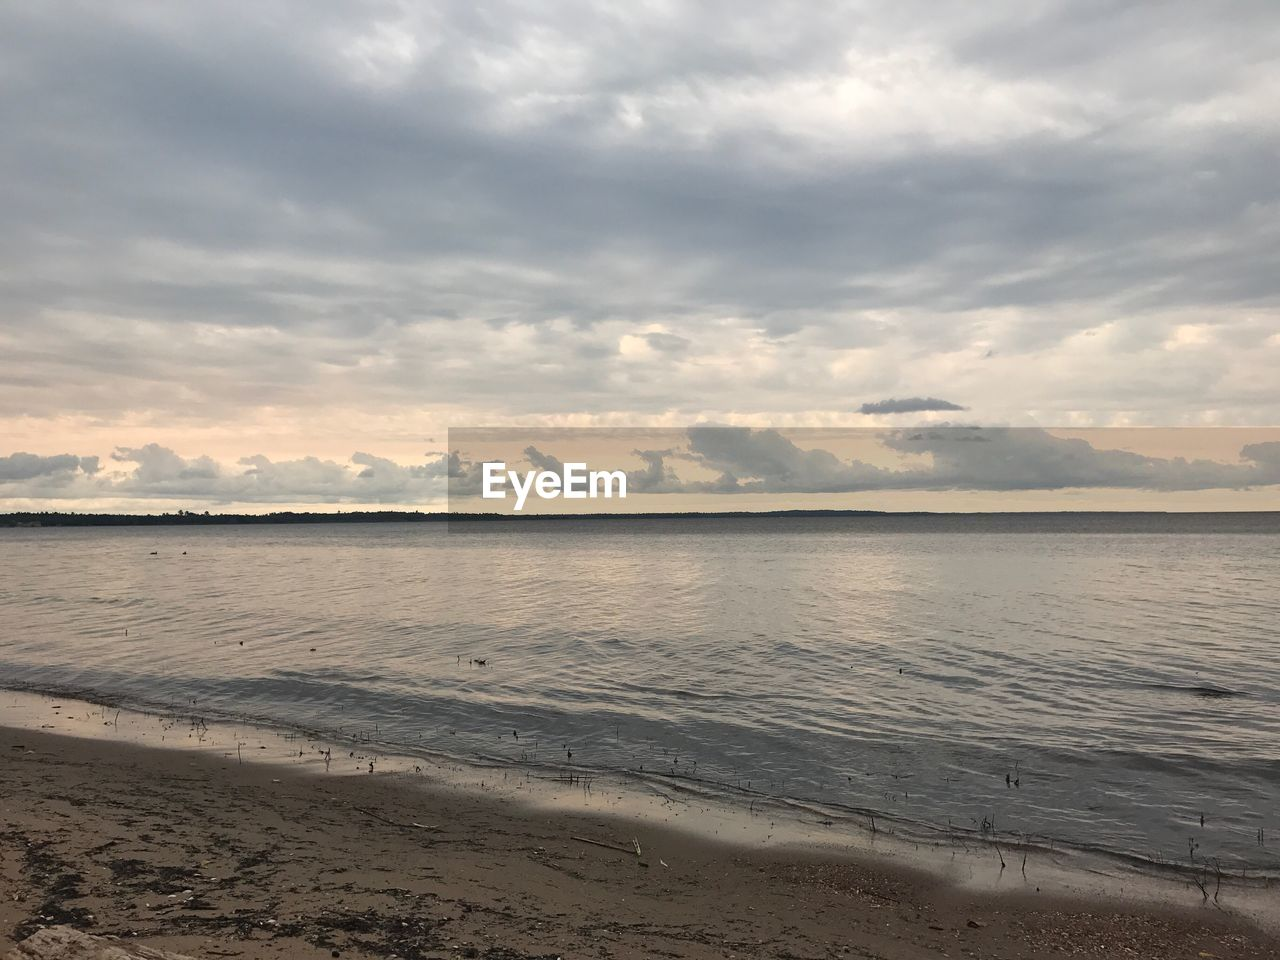 water, beach, sky, nature, tranquility, sea, beauty in nature, cloud - sky, tranquil scene, scenics, sand, no people, outdoors, sunset, horizon over water, day